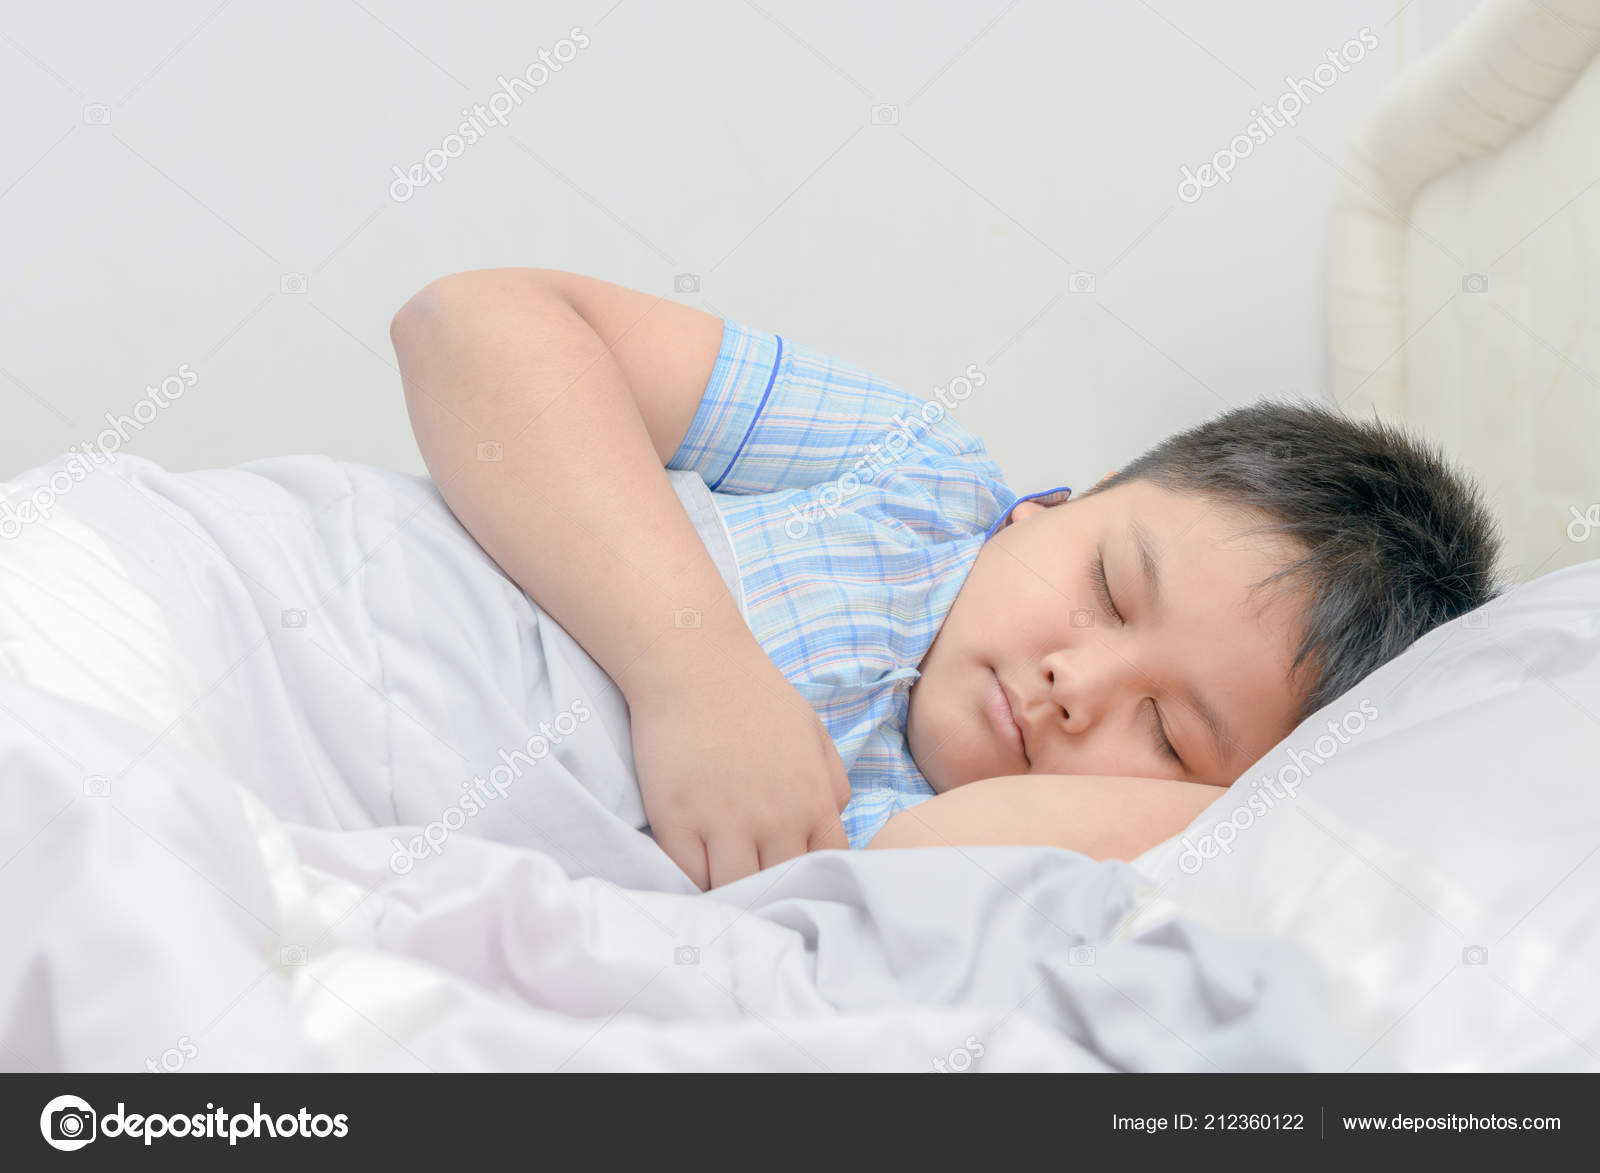 Obese fat boy sleeping bed relaxation concept stock photo